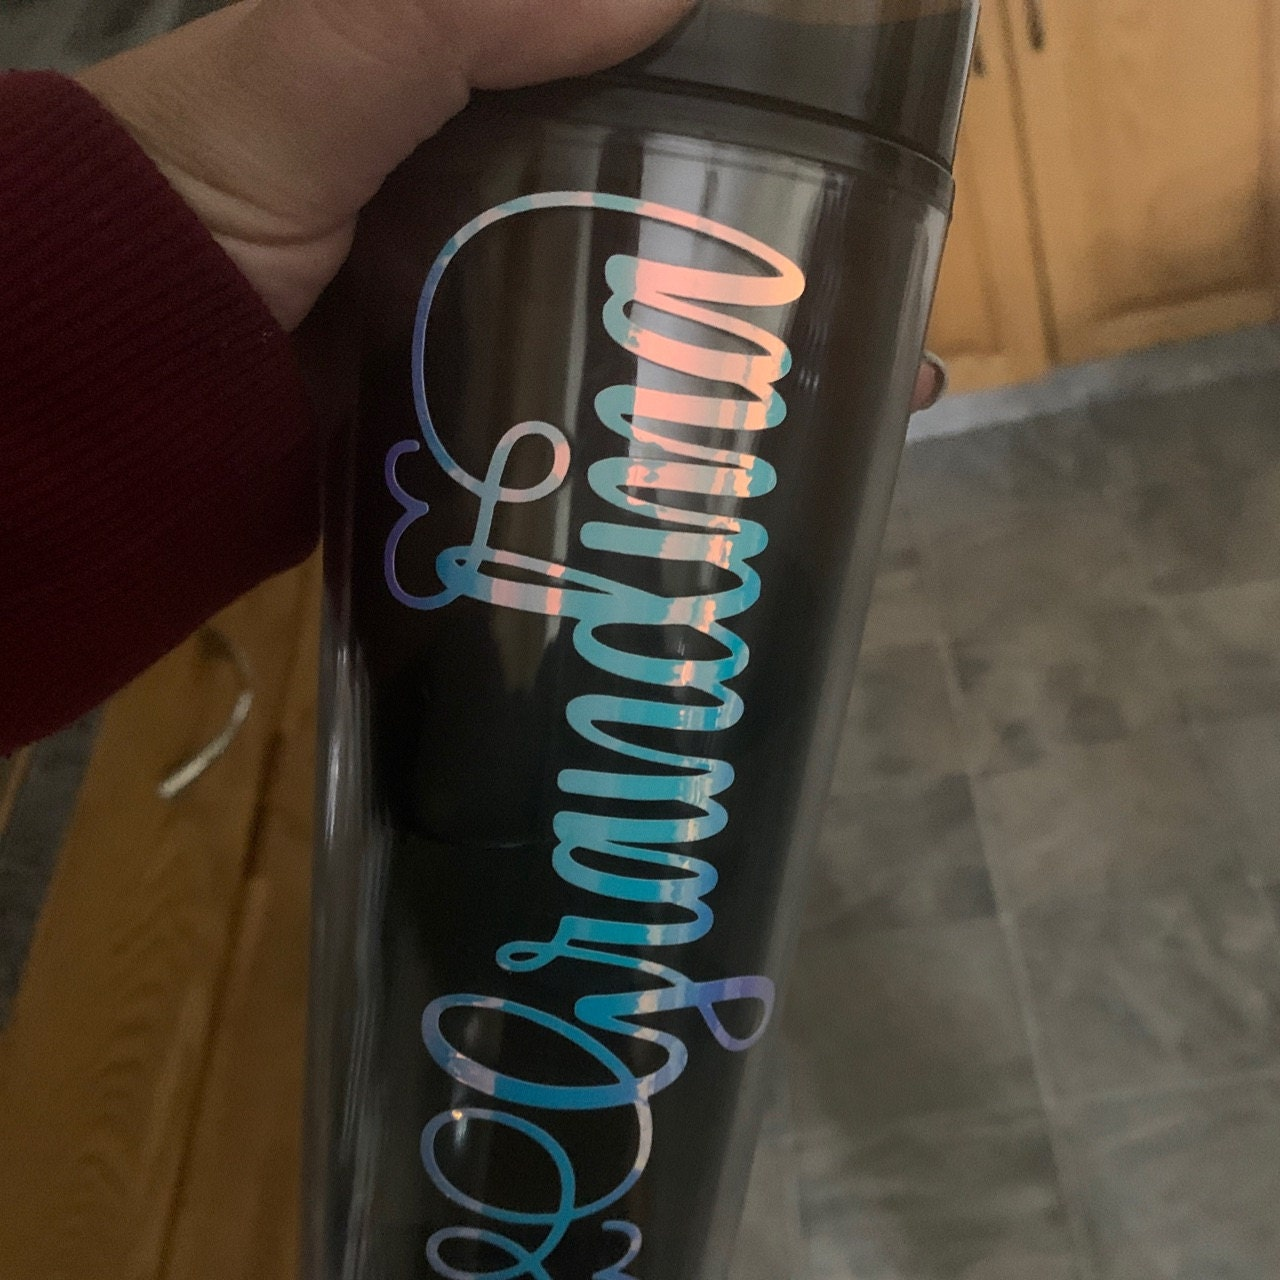 lisamarie2585 added a photo of their purchase